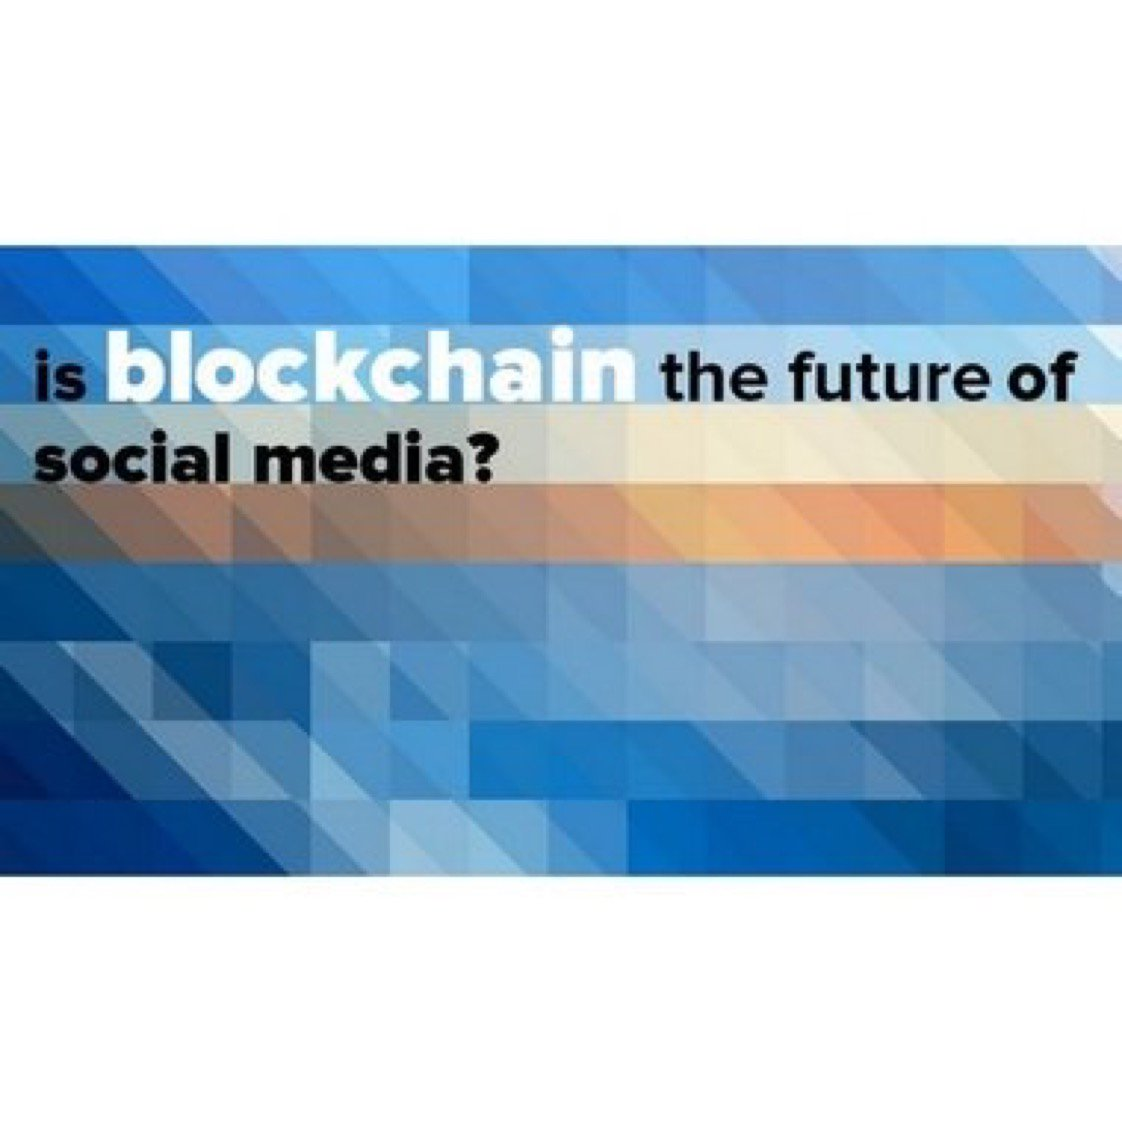 [ #DigitalEra] Is #Blockchain the future of #SocialMedia? Examples Steemit &amp; WildSpark  http:// ow.ly/2WCQ30fpW0k  &nbsp;    #SMM #DigitalTransformation<br>http://pic.twitter.com/Js1B4fpVrK